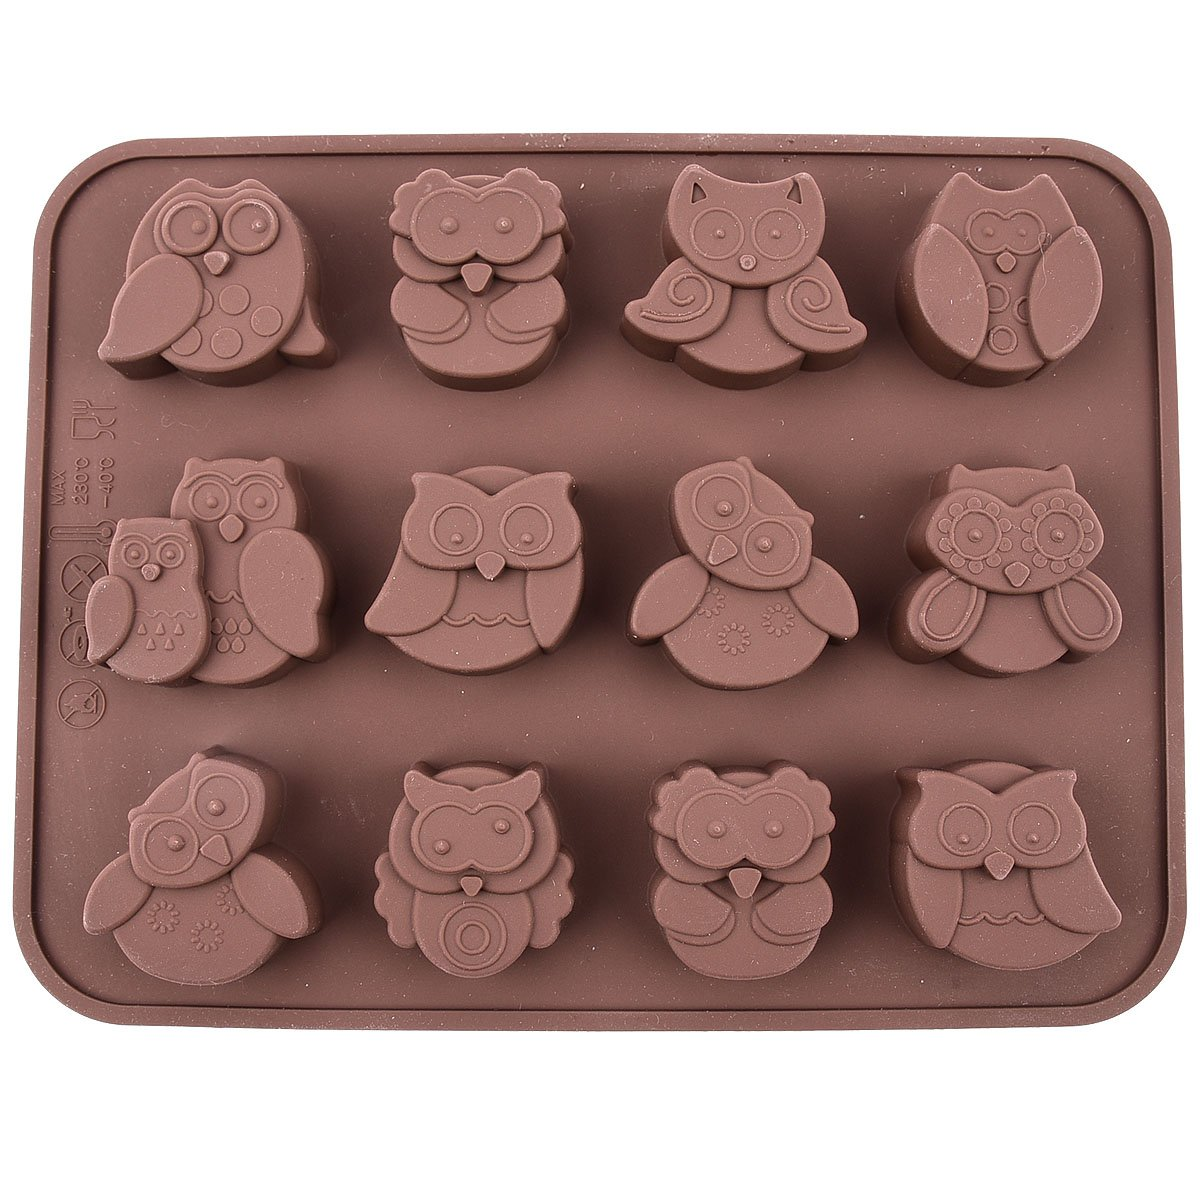 Silicone Owl Baking Mold Only.